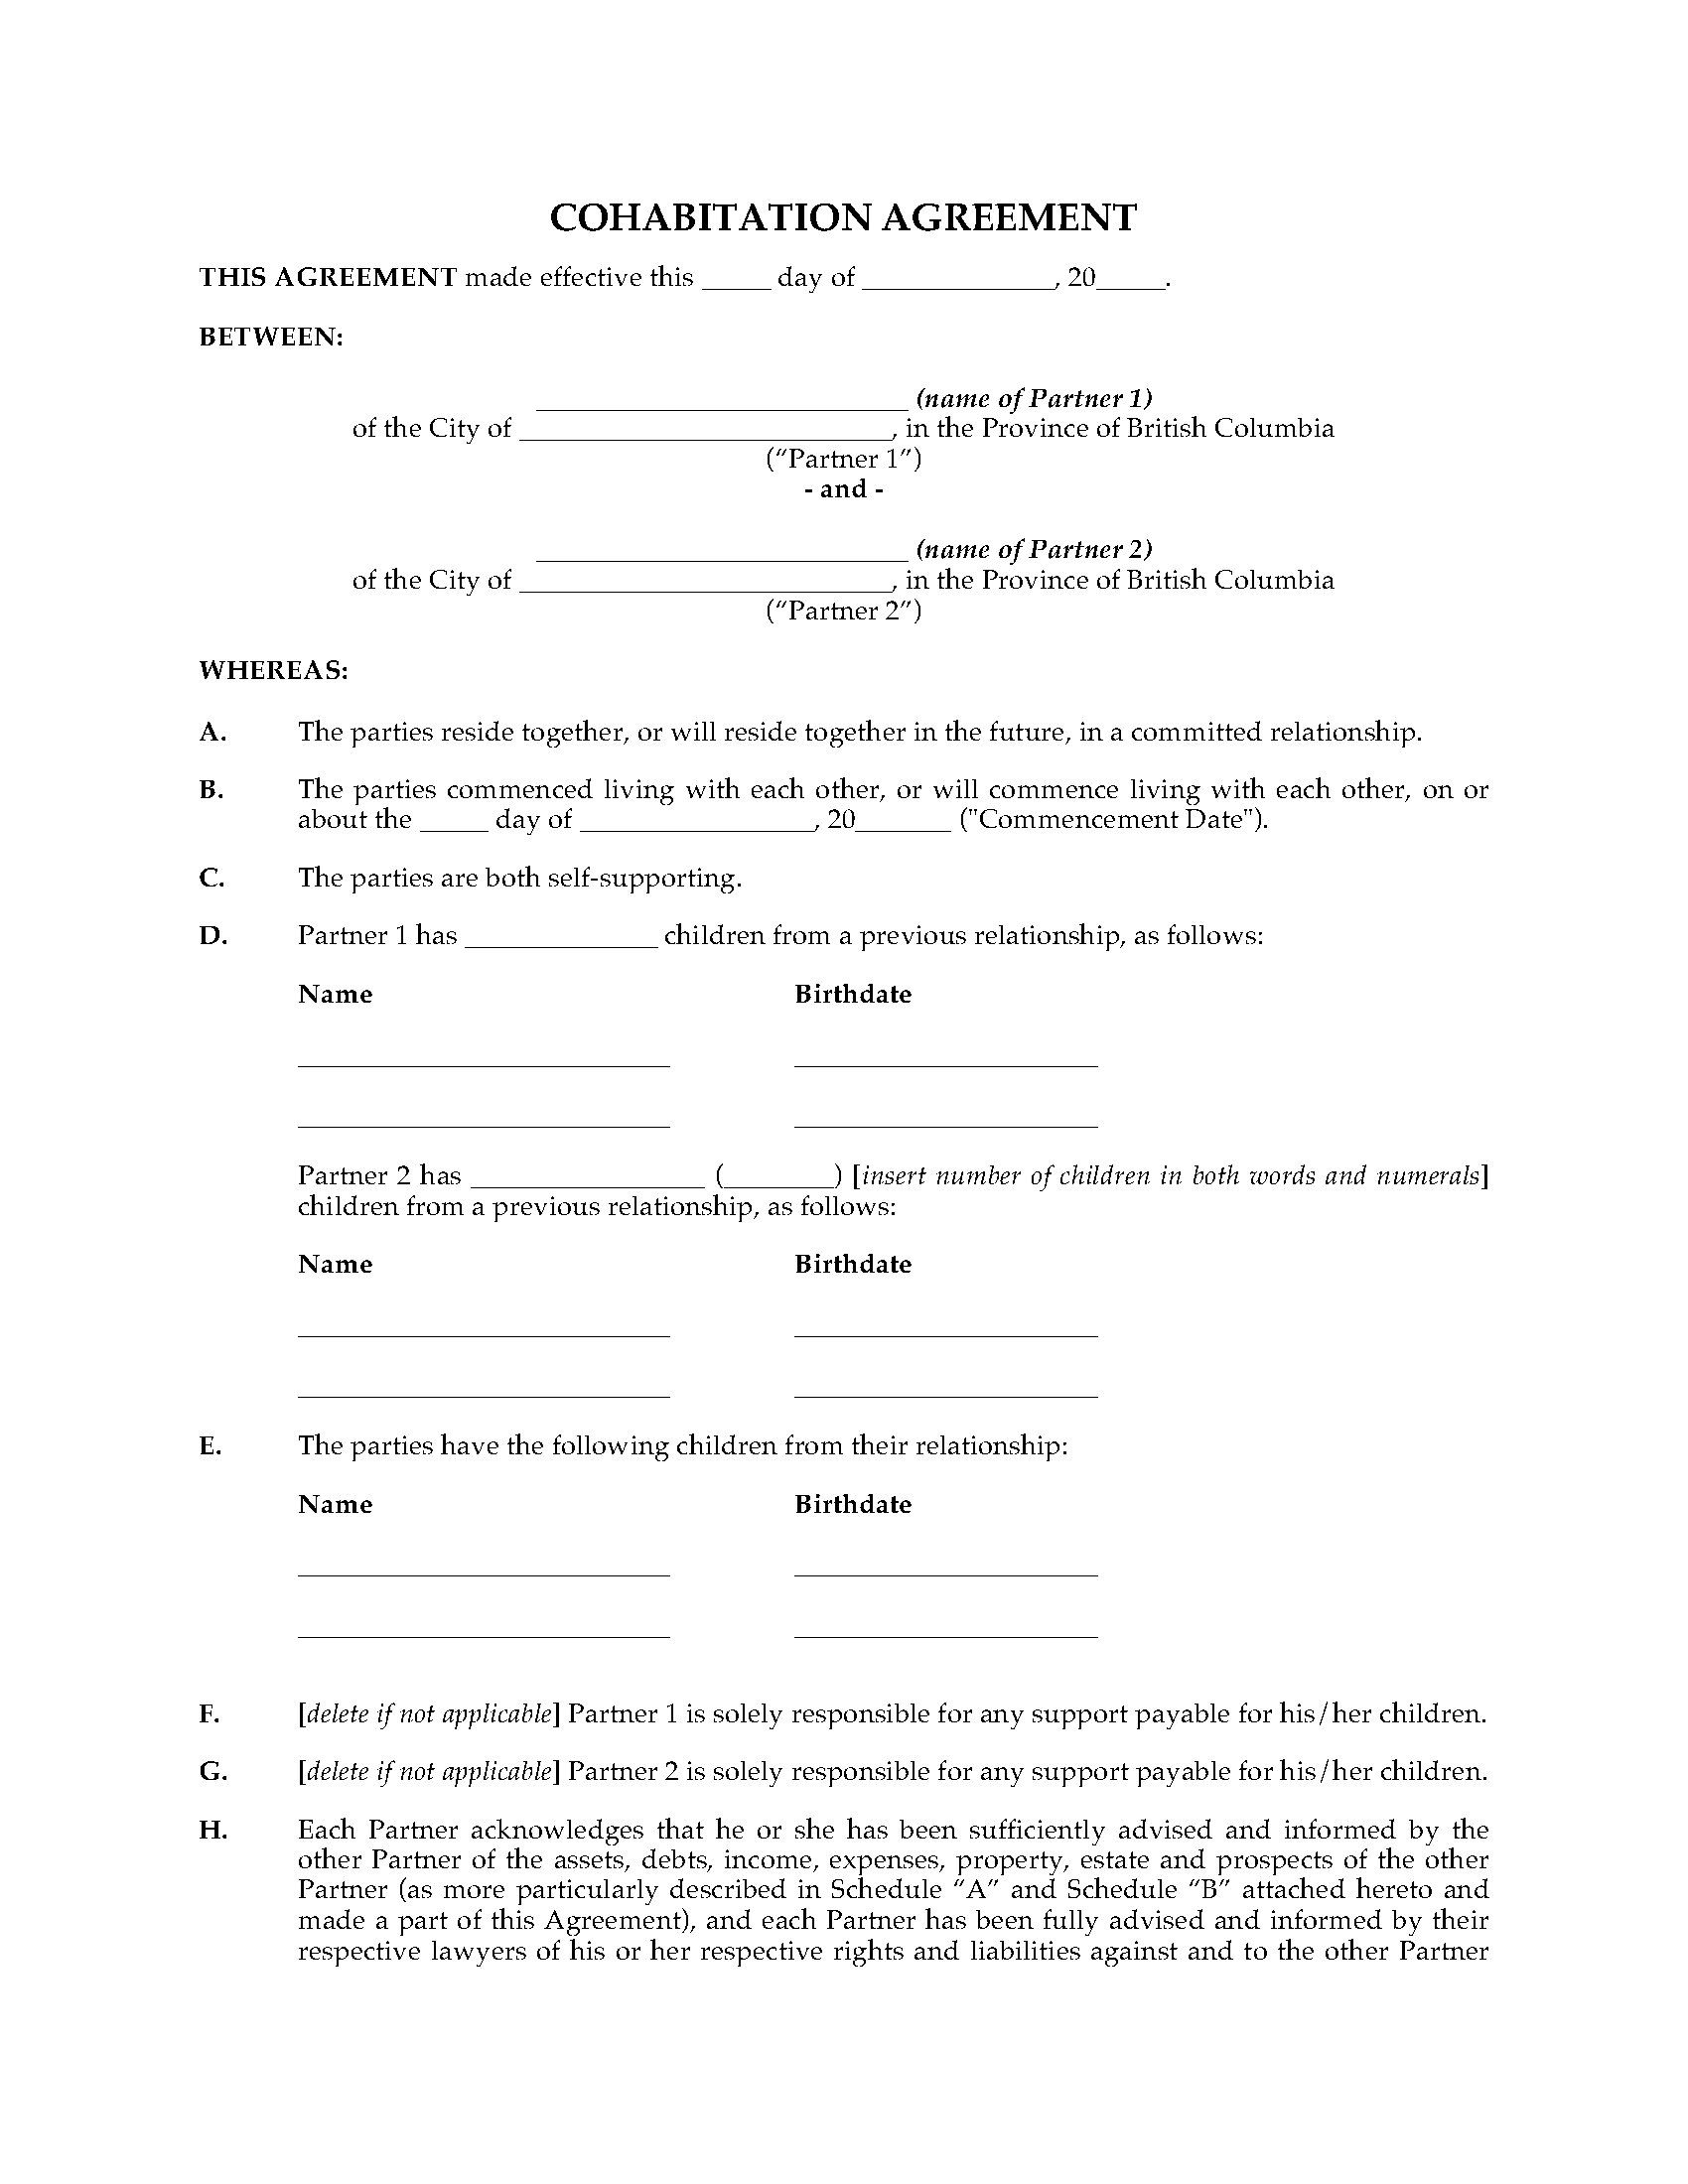 British Columbia Cohabitation Agreement | Legal Forms and Business